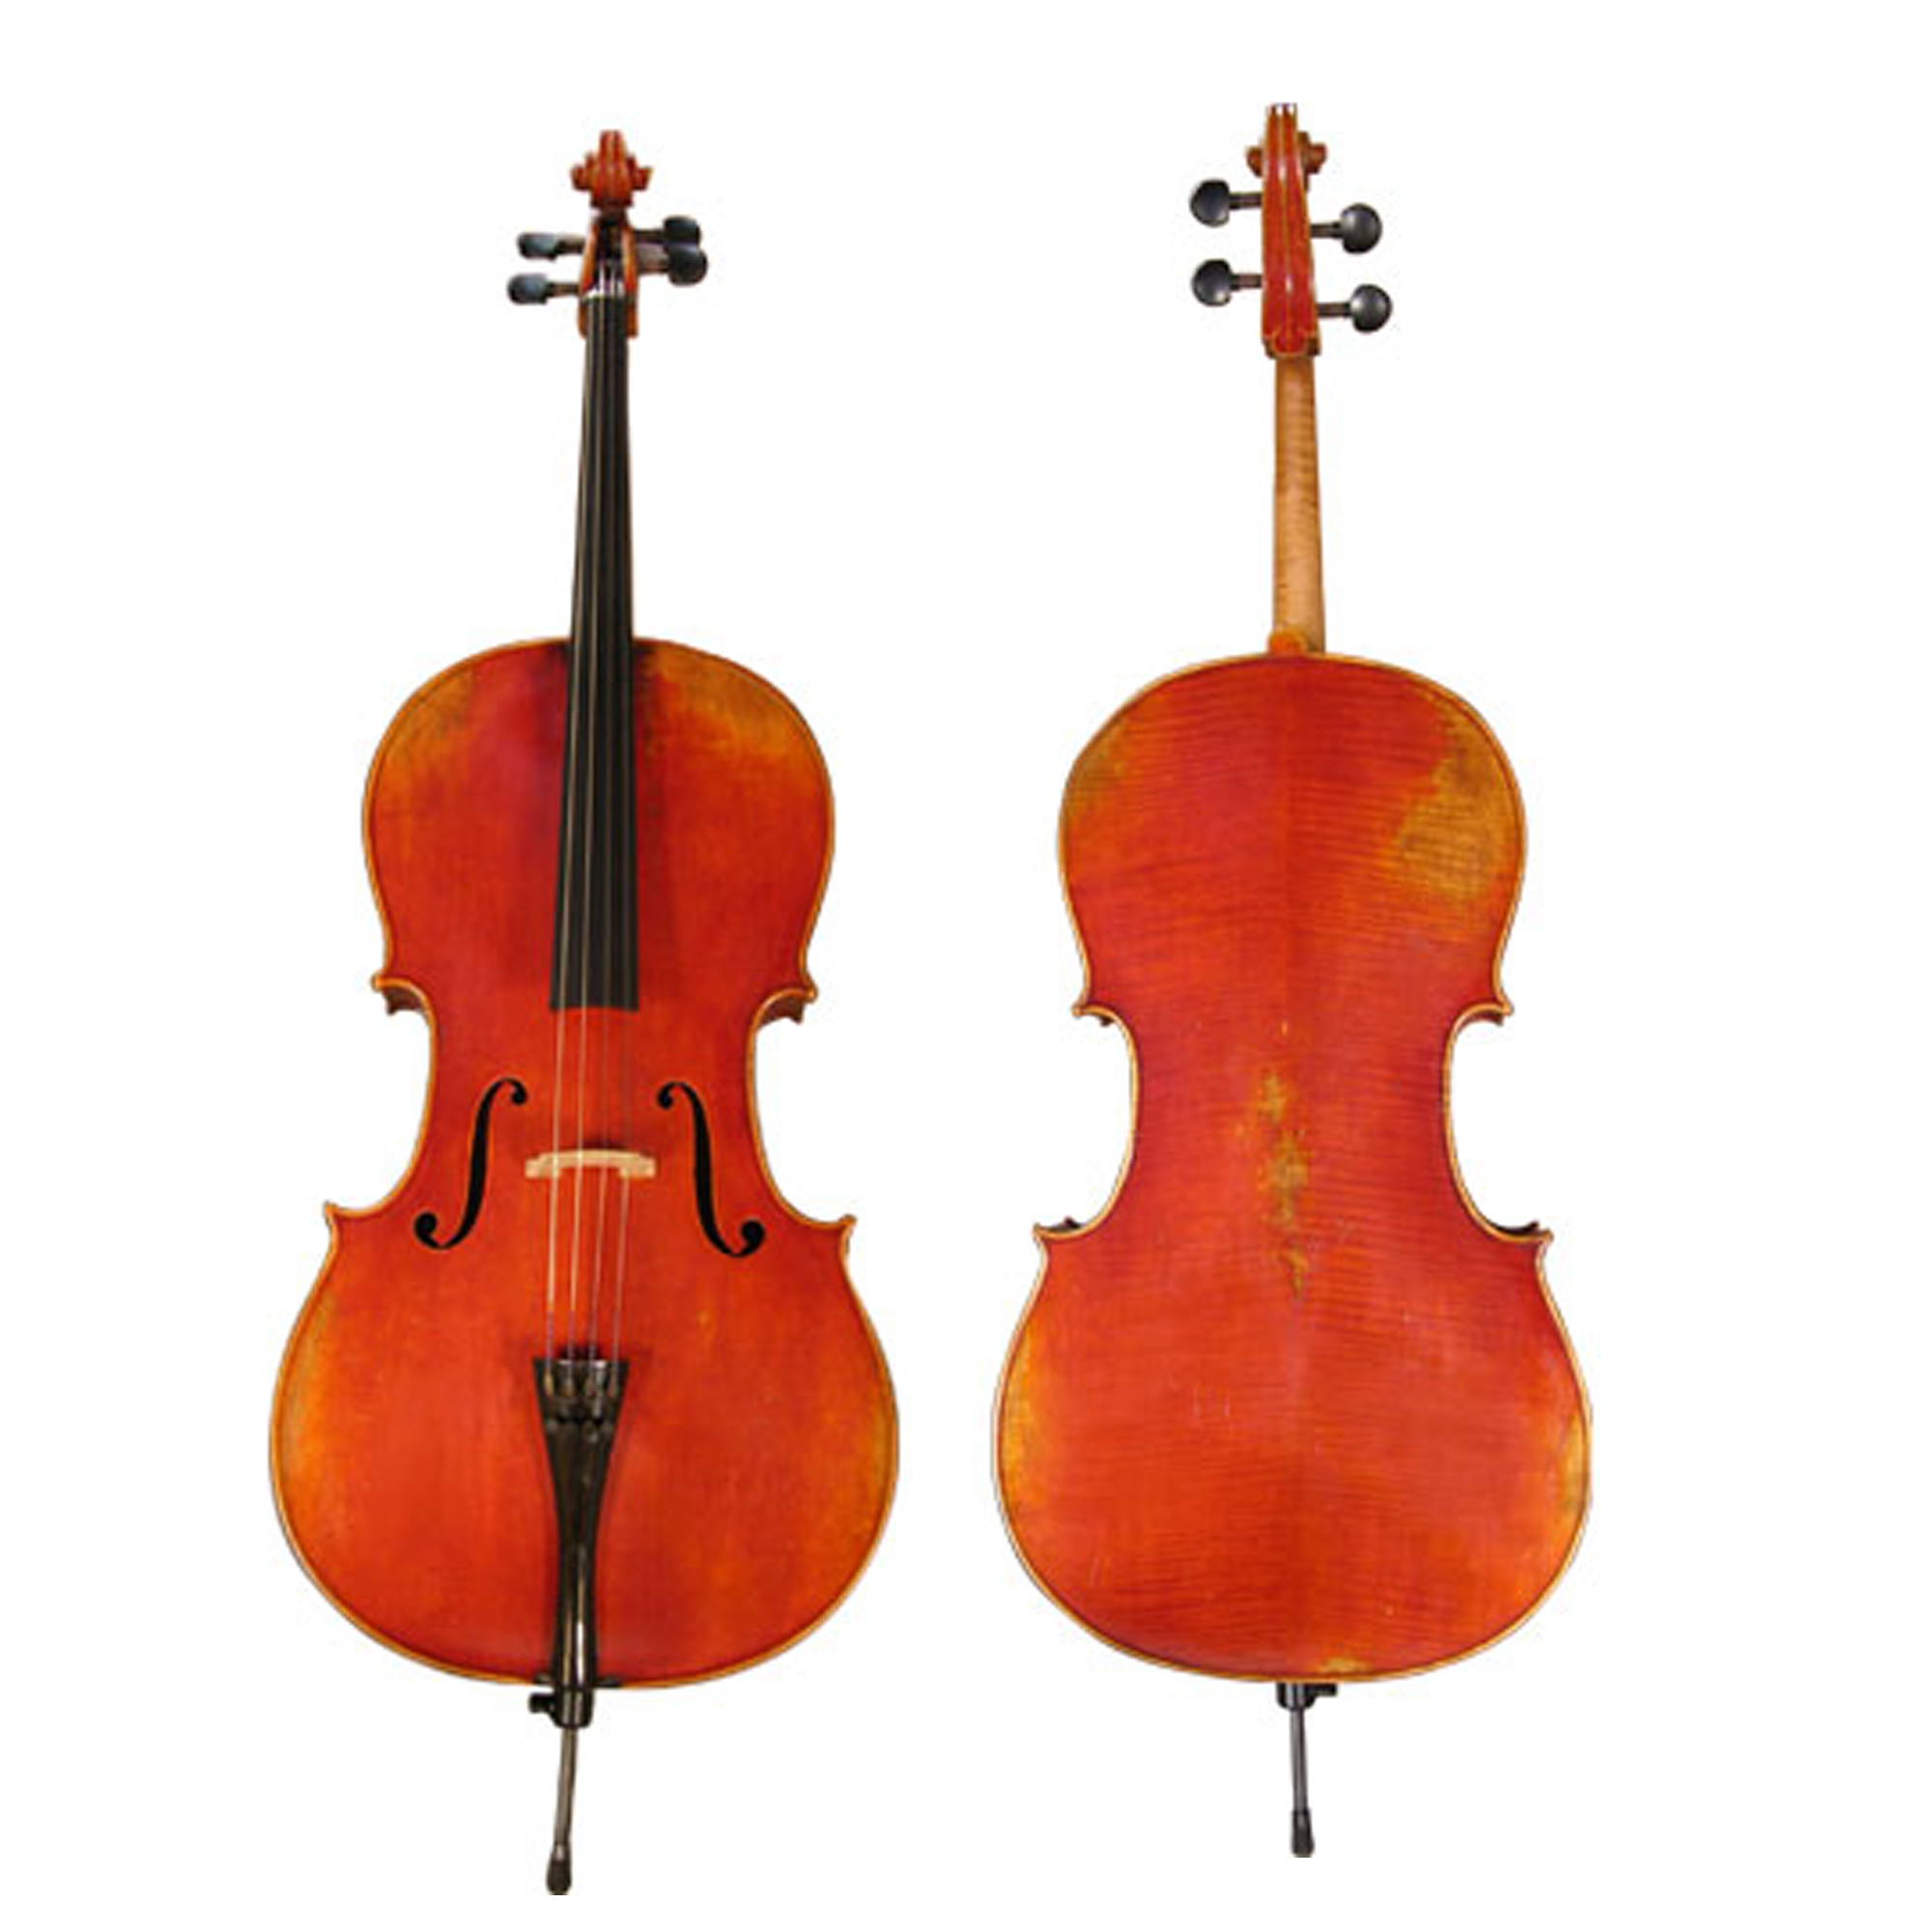 D'Luca Hand-Made French Antique Finish Ebony Cello Outfit, 3/4 Size